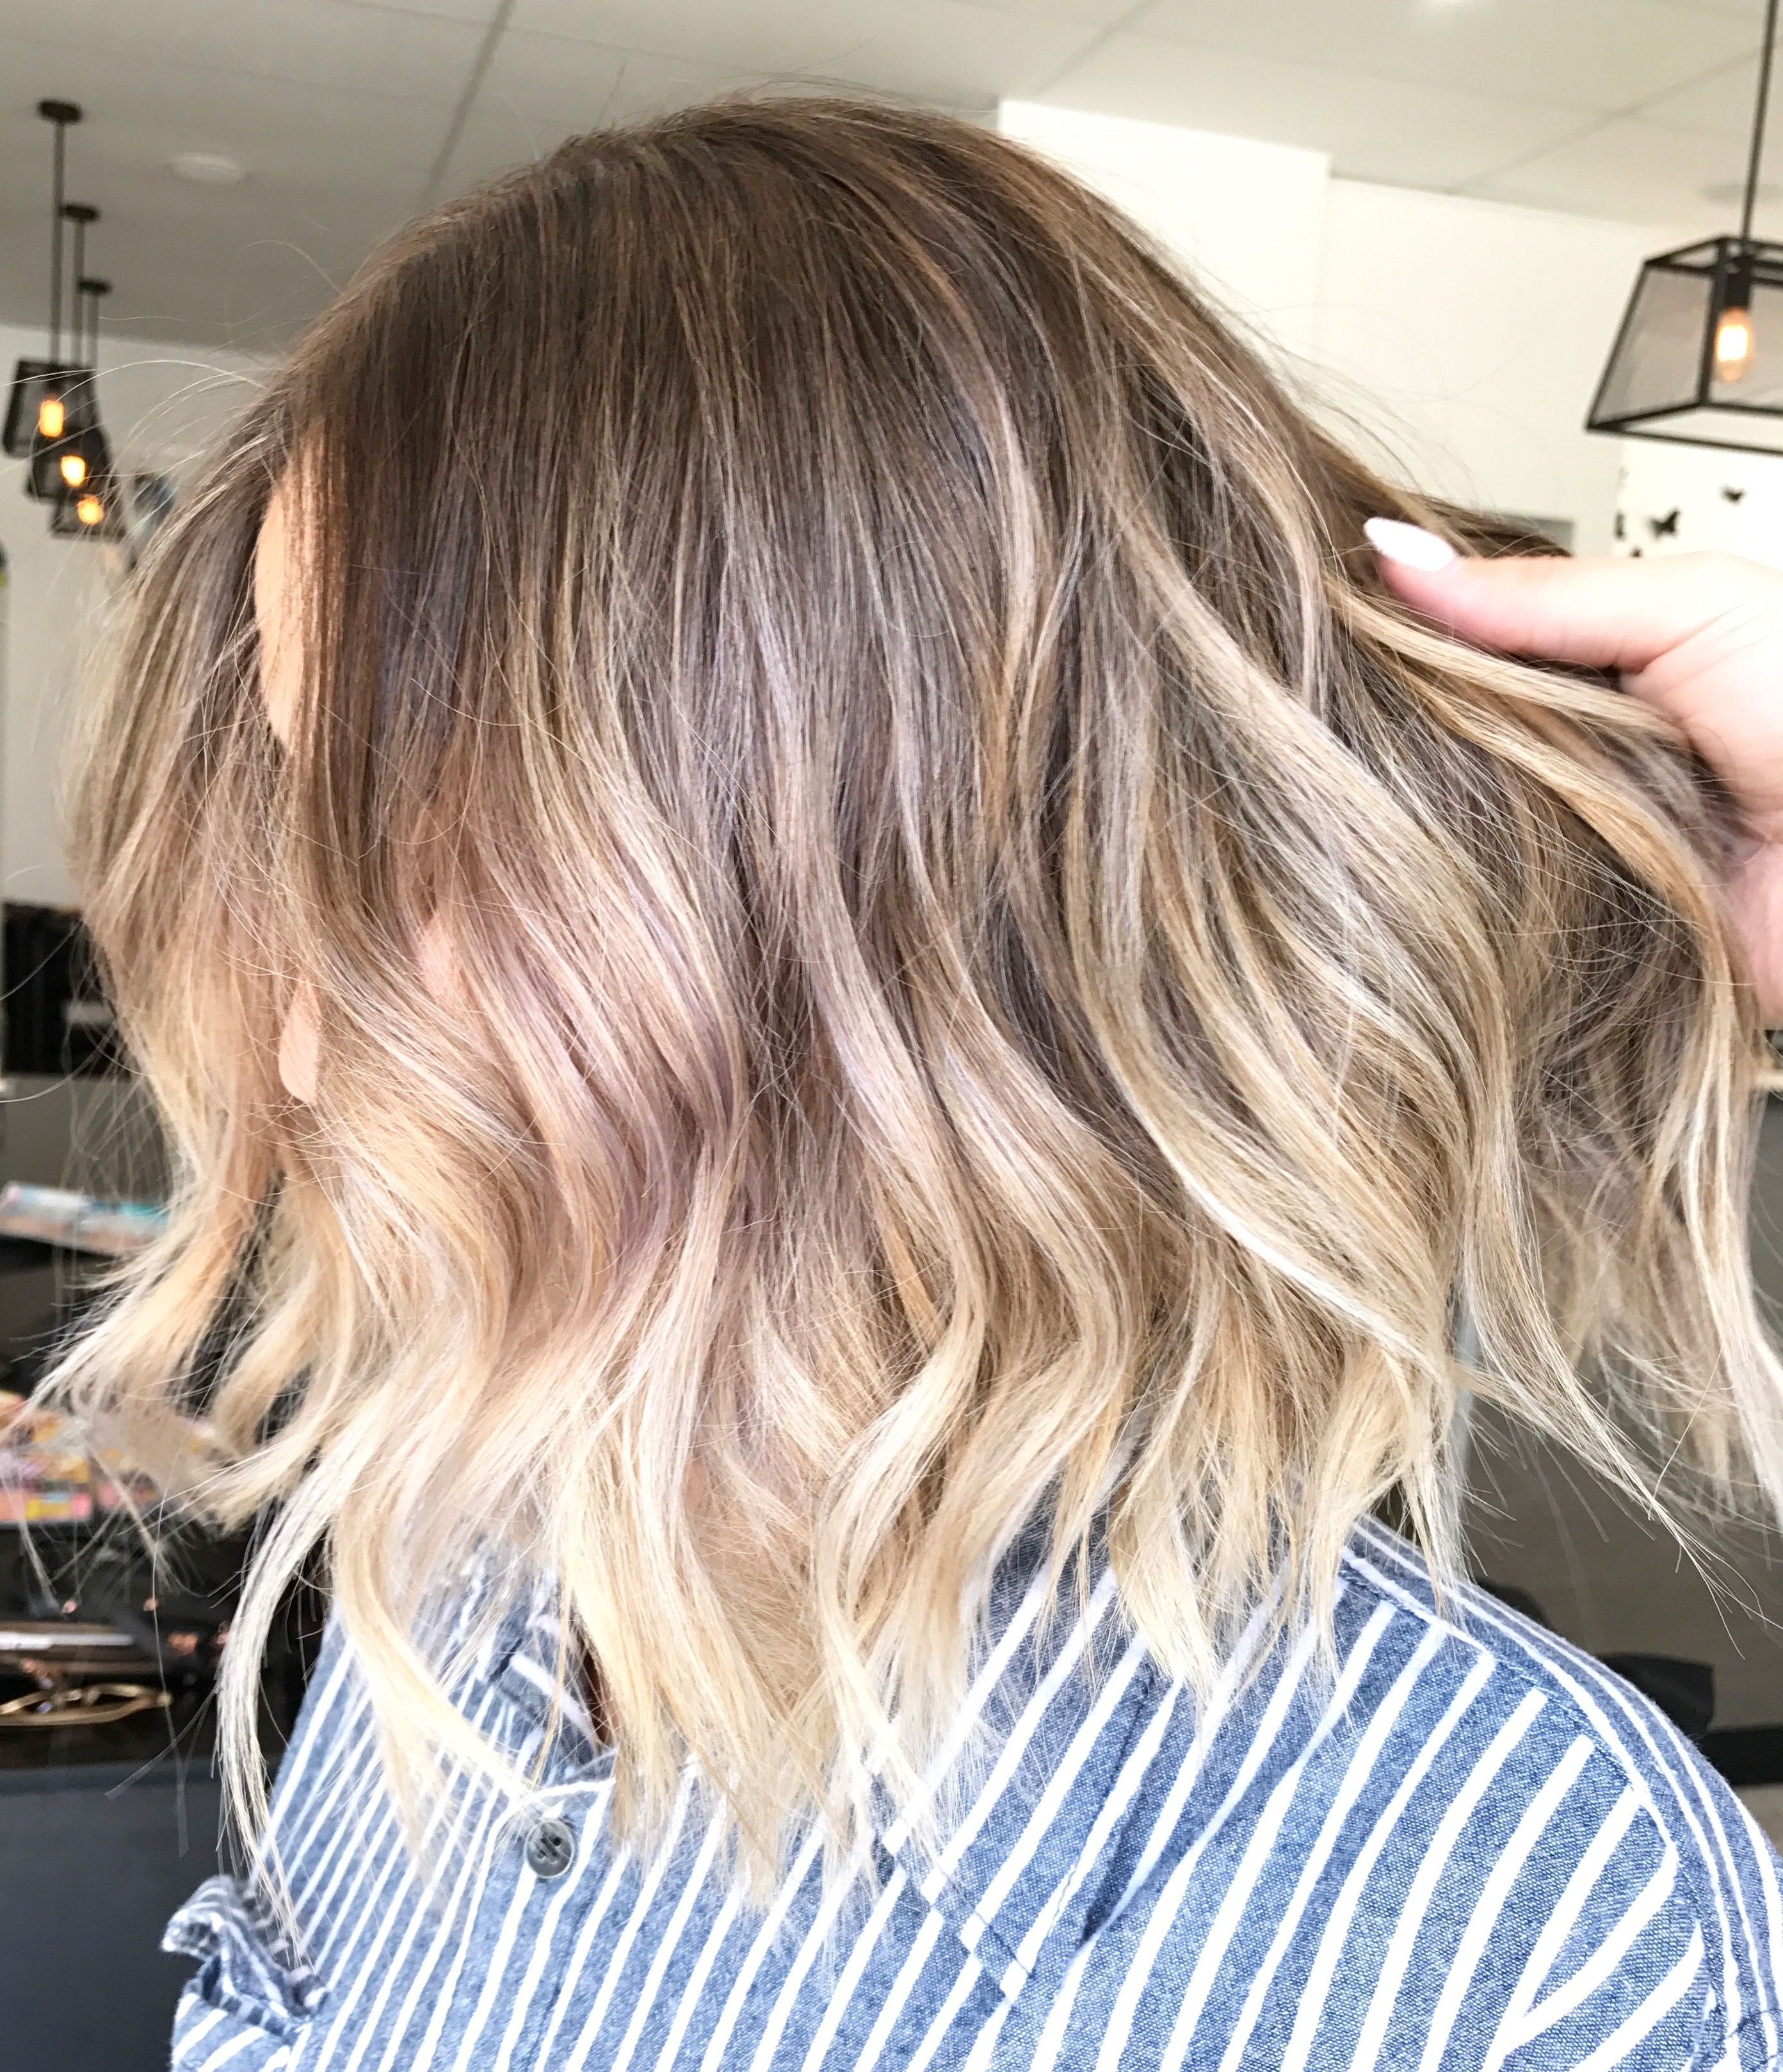 Newest Brown Blonde Balayage Lob Hairstyles With Blonde Balayage Short Lob Multidimensional Colour Lived In Hair (View 20 of 20)